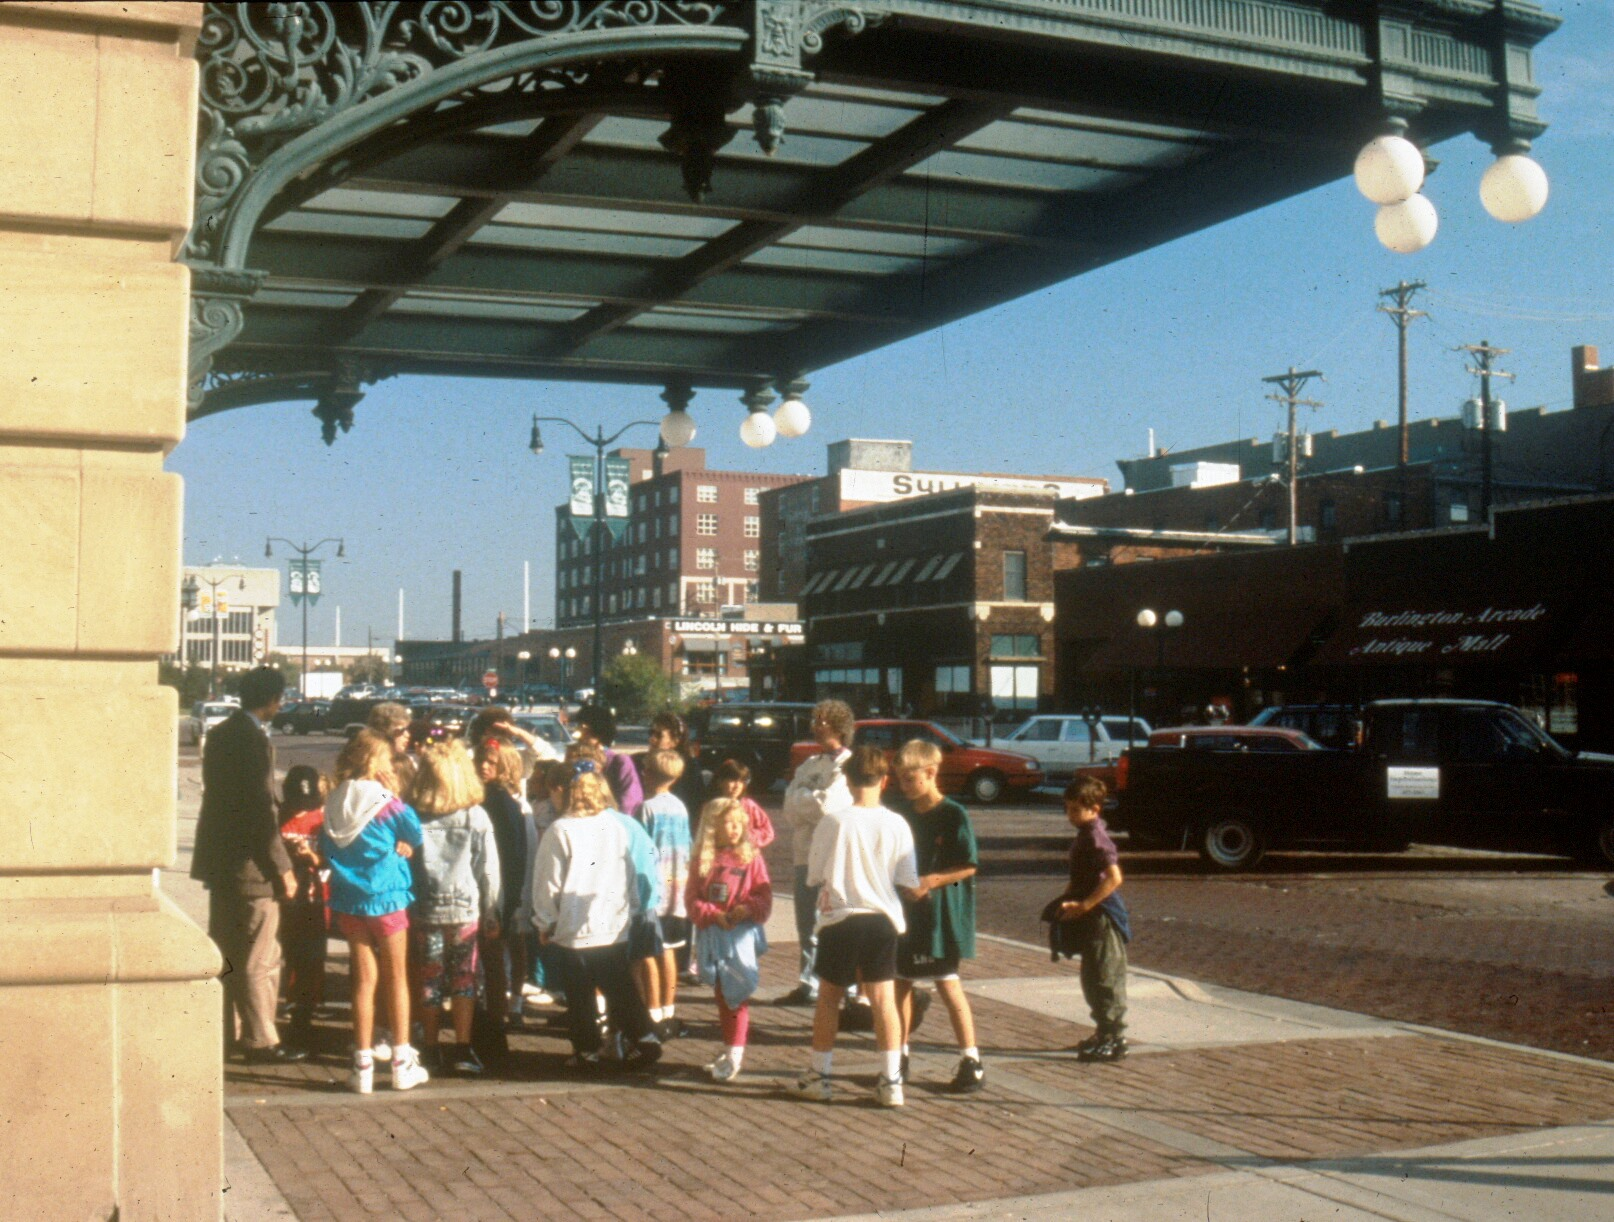 A group of children tour Lincoln, Nebraska's Haymarket Landmark District, which features 19th and early 20th century wholesale houses